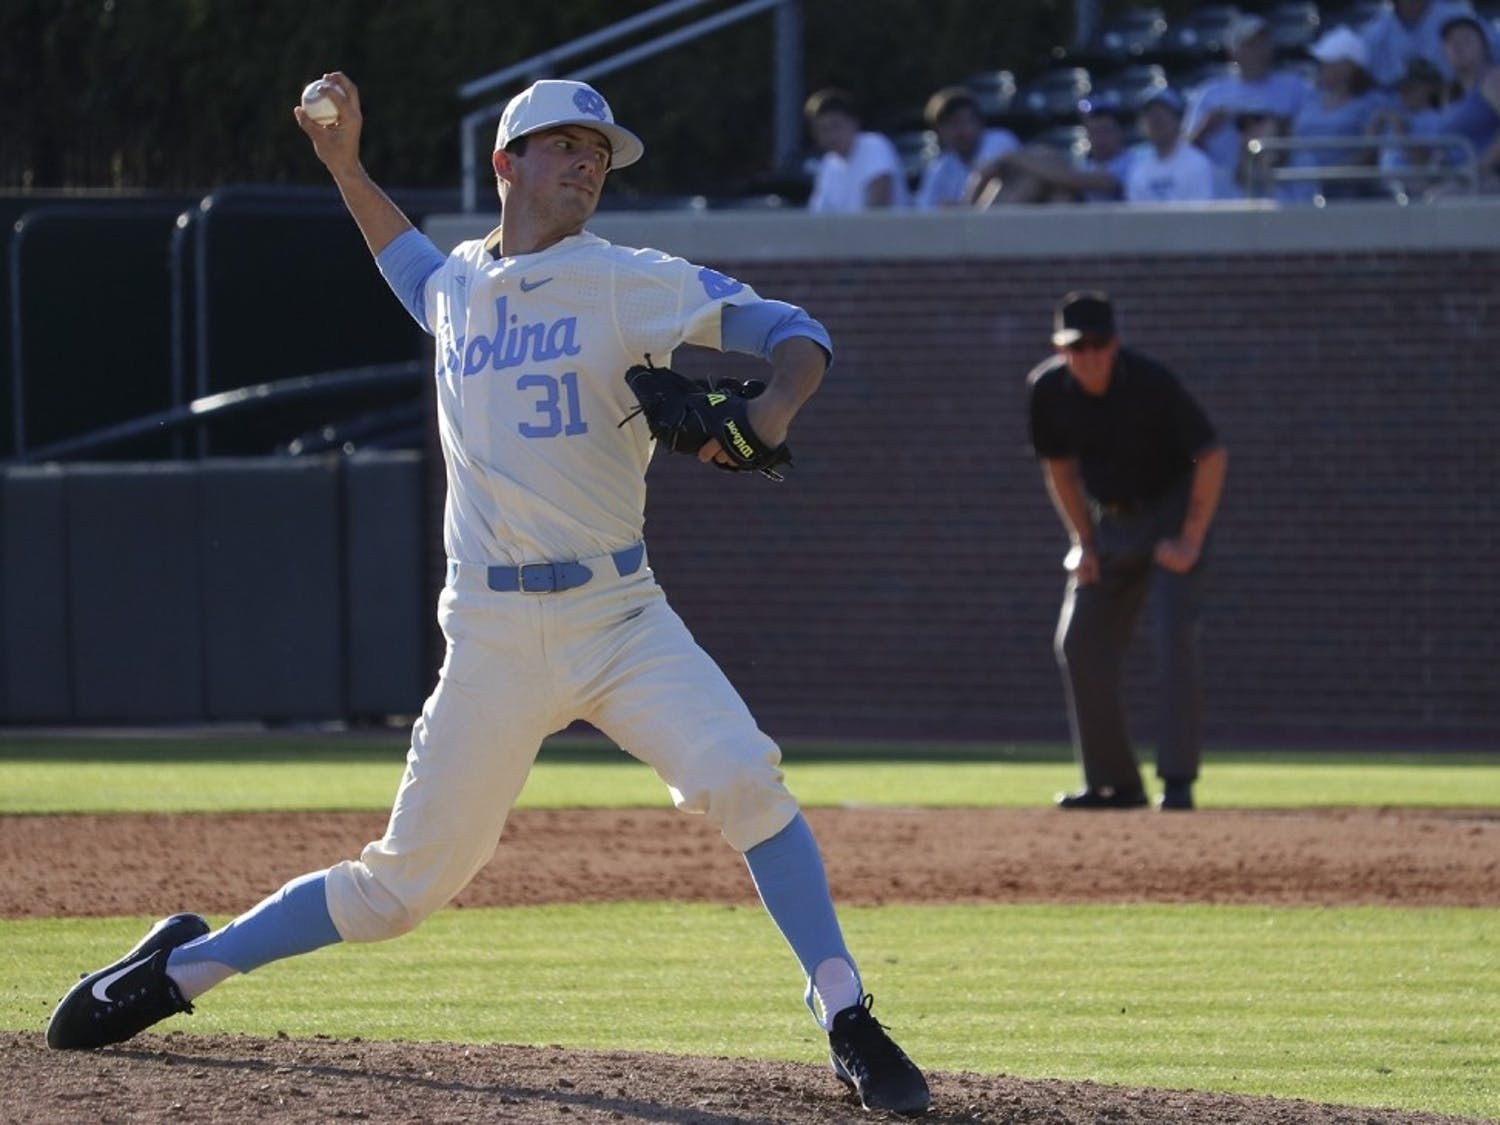 UNC's Josh Hiatt (31) pitches against Kentucky during the 2017 season.